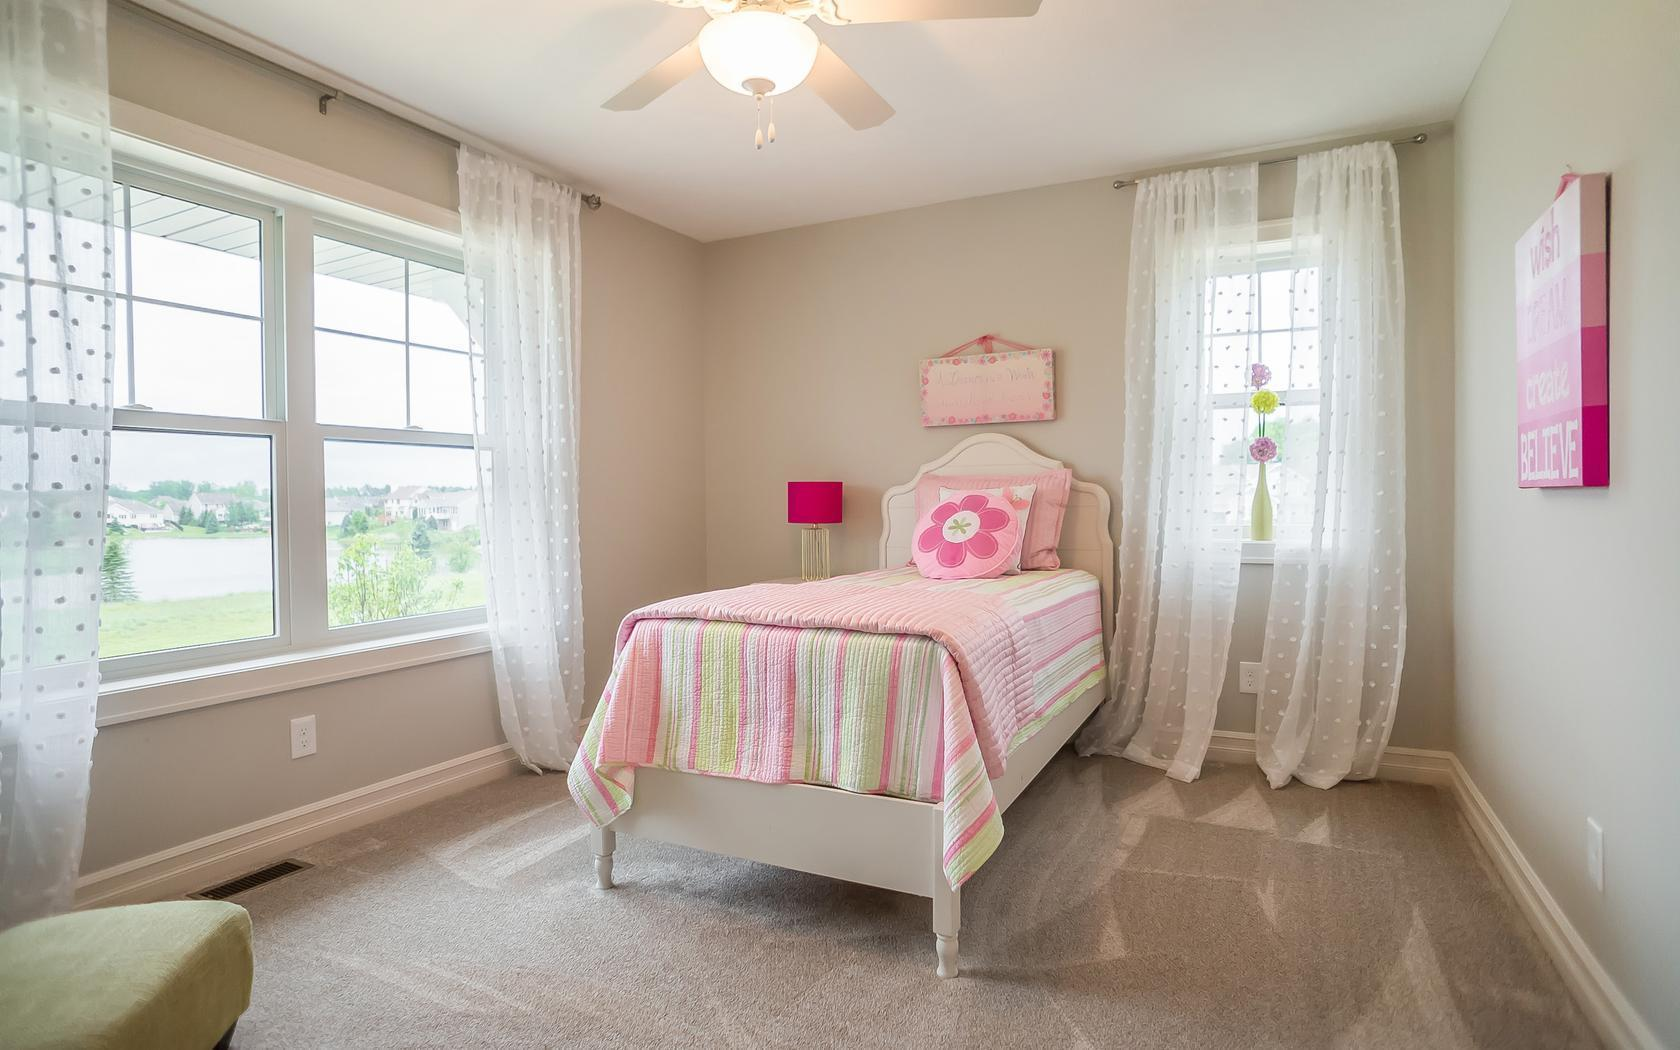 Bedroom featured in the Mayberry By Mayberry Homes in Lansing, MI